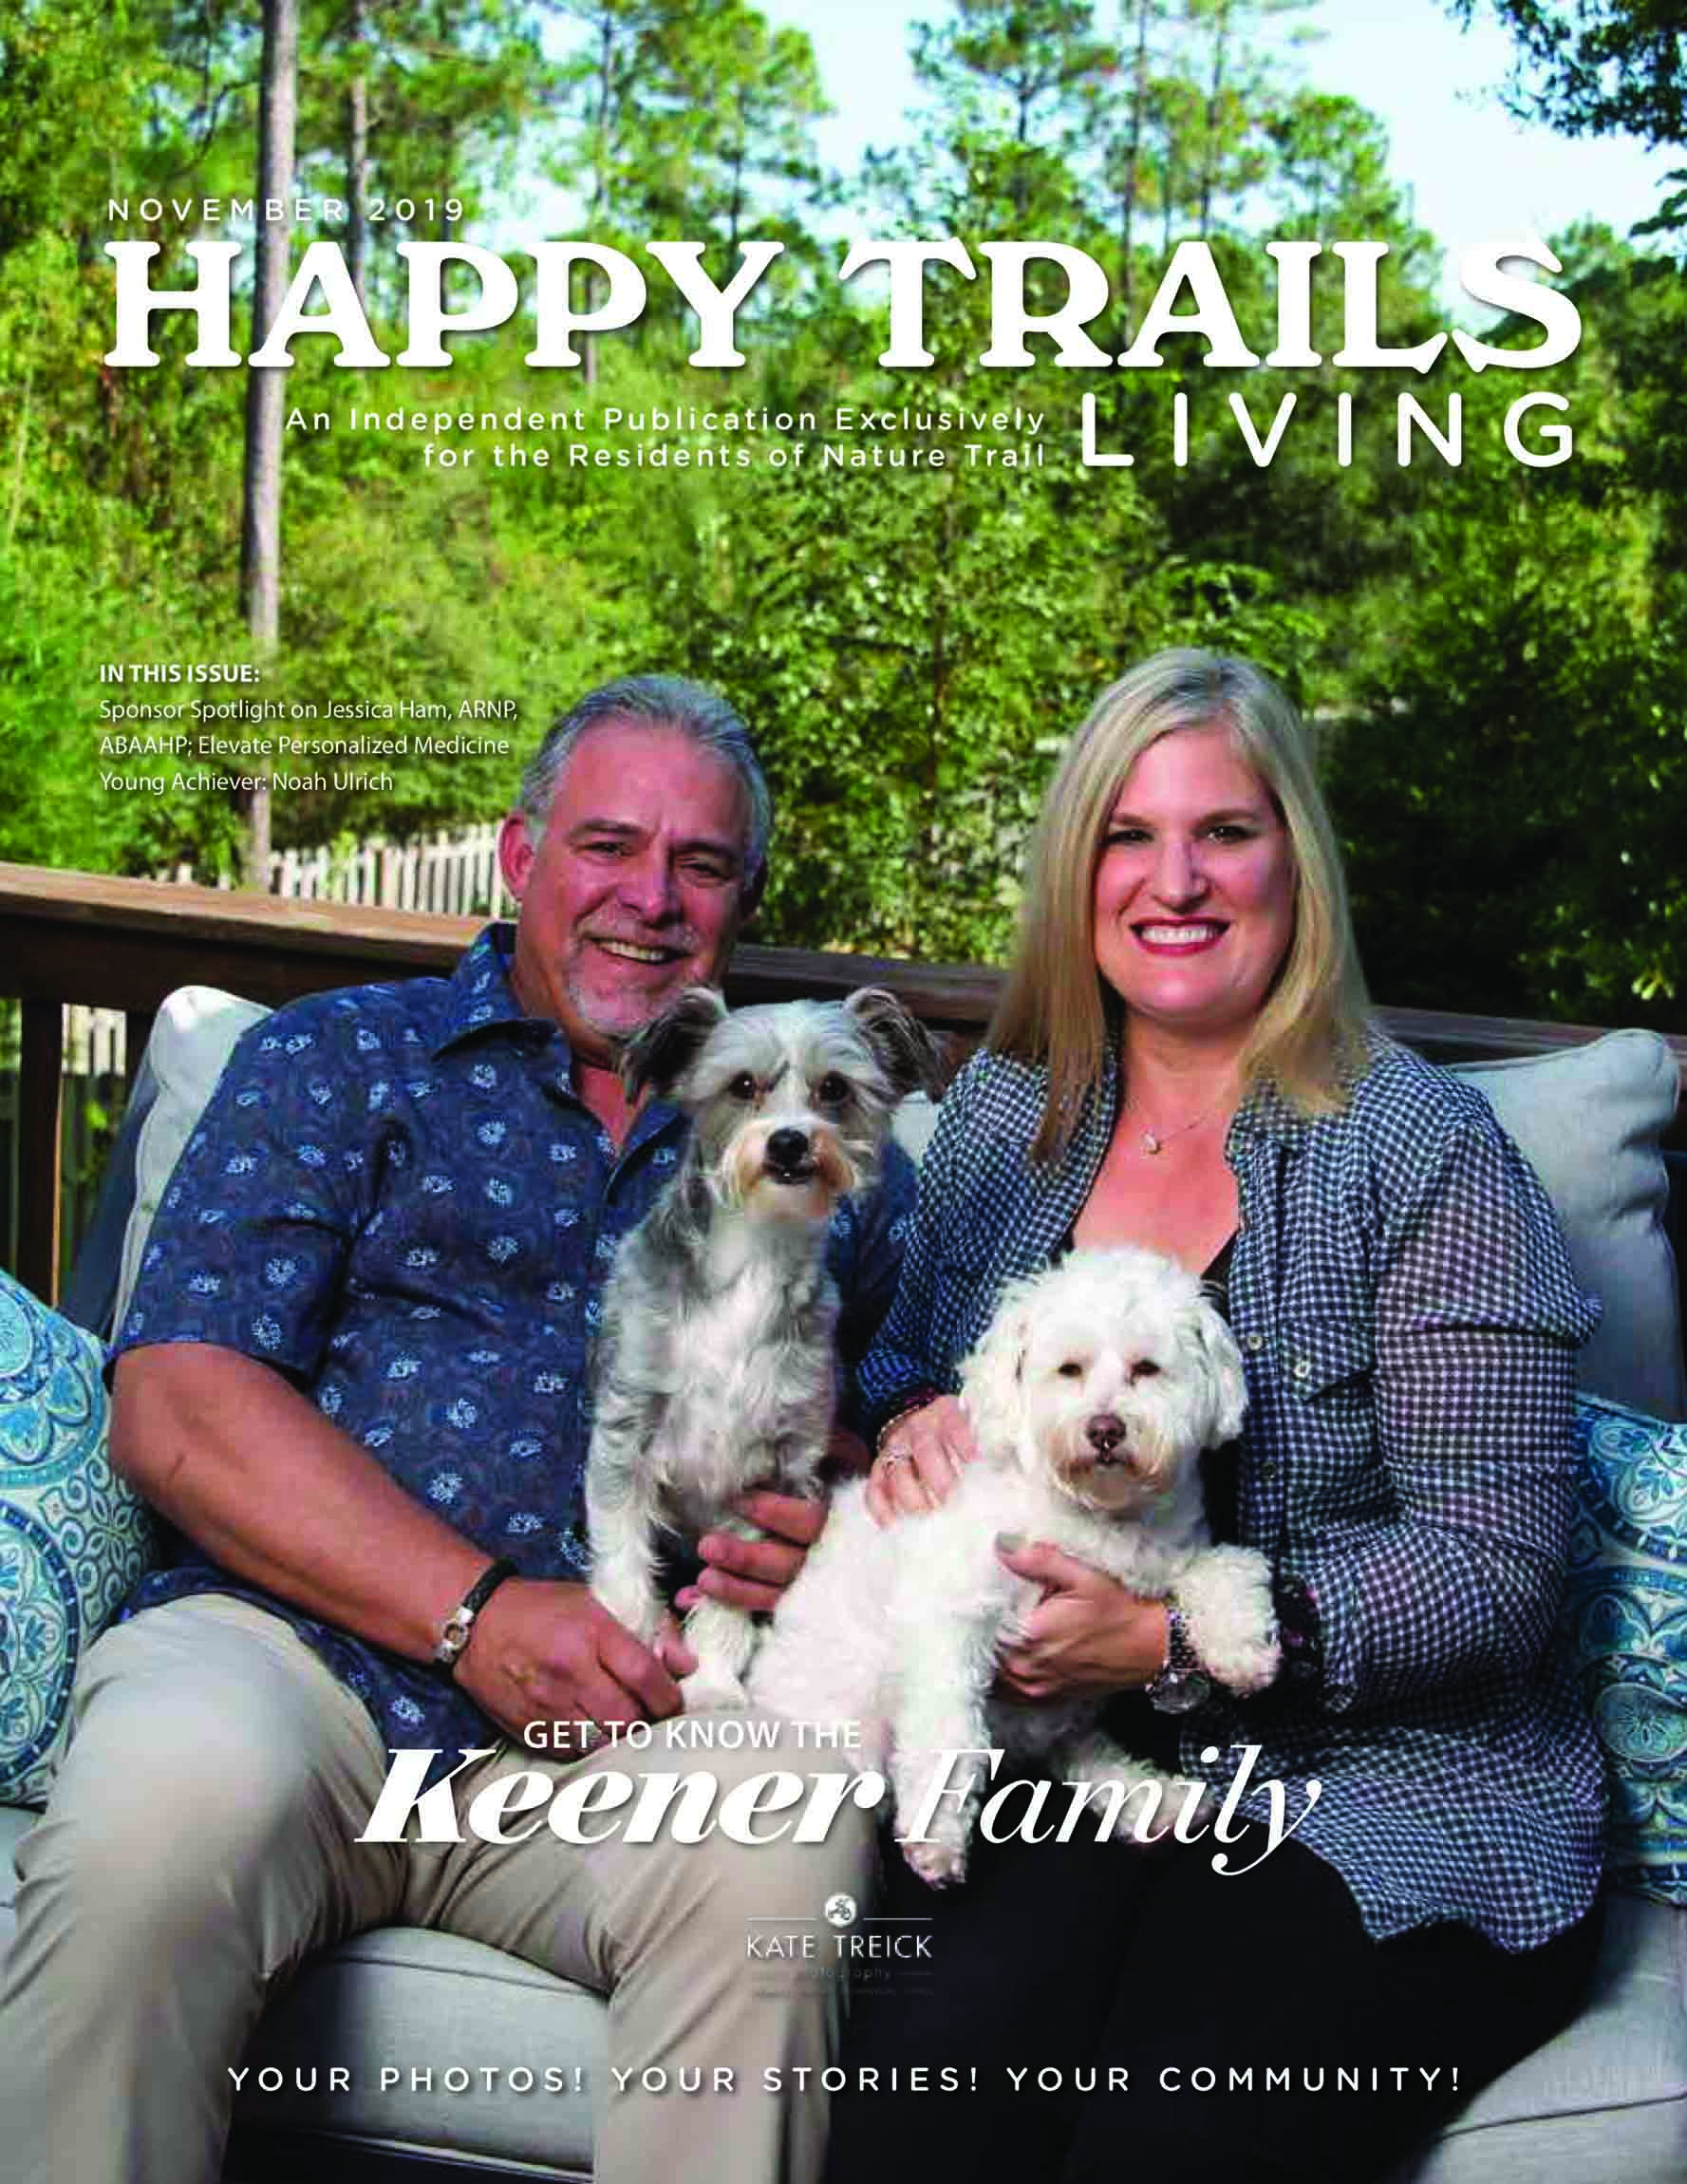 Happy Trails Living Cover for November 2019